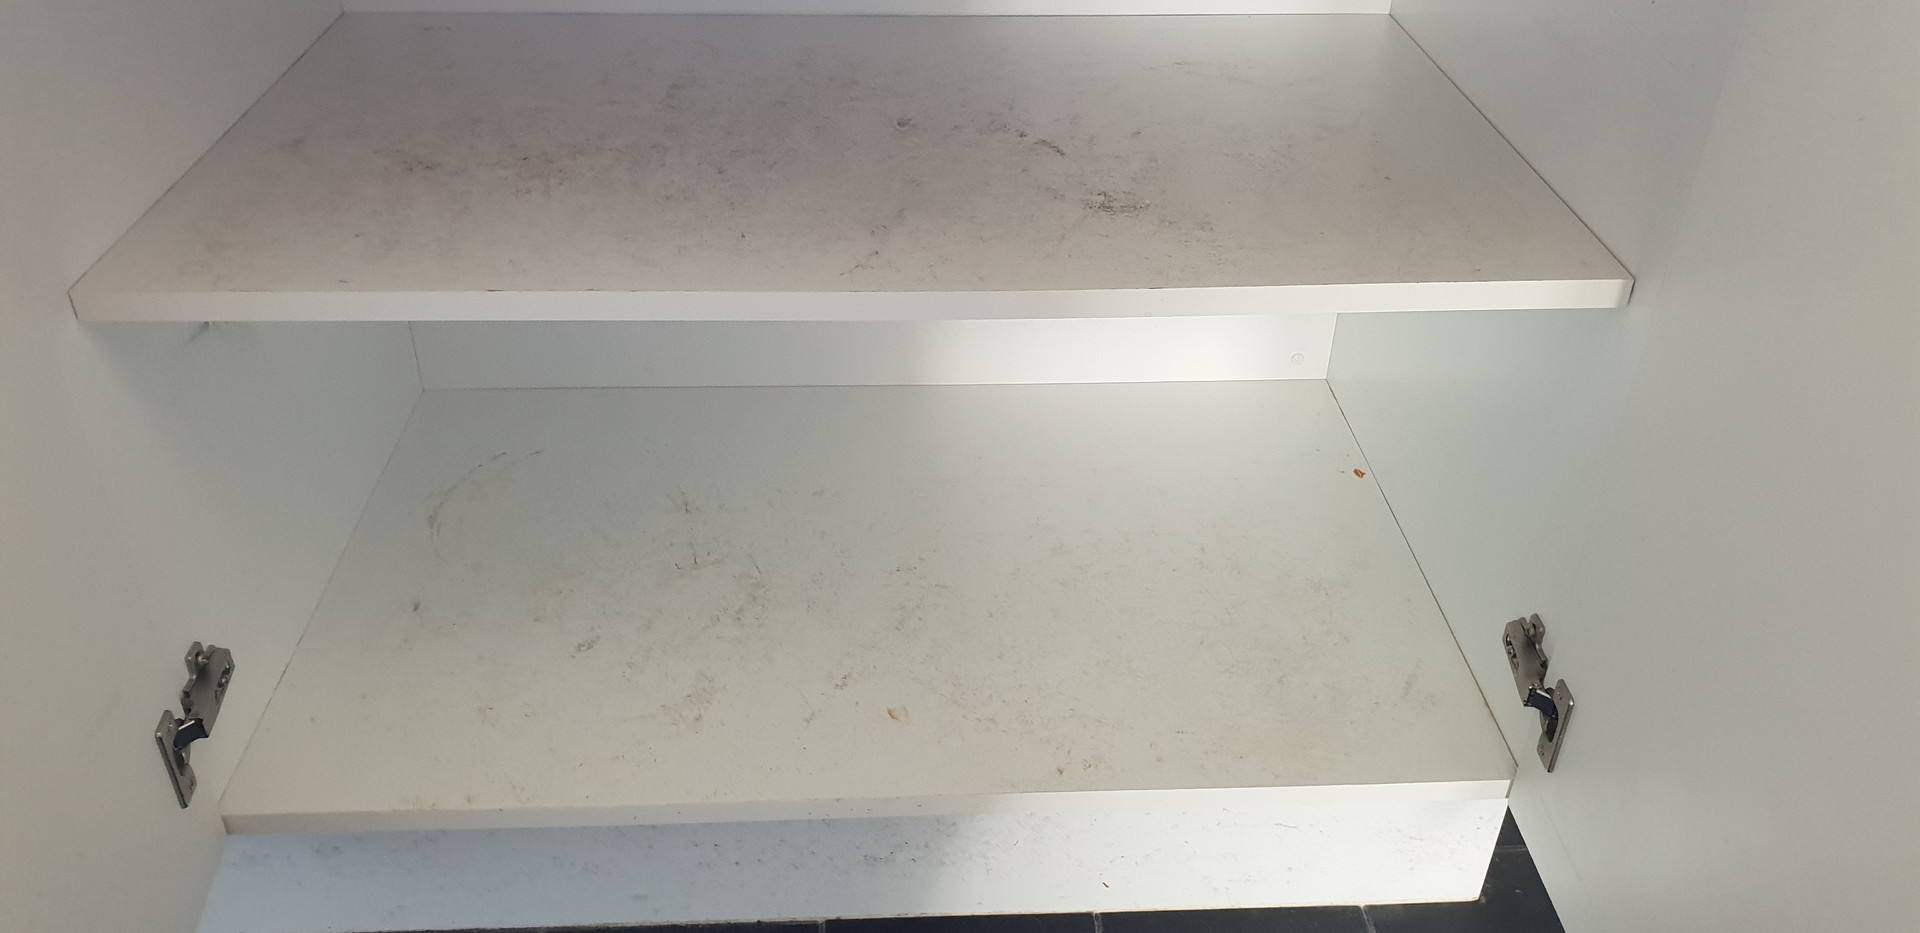 Cupboards with old stains